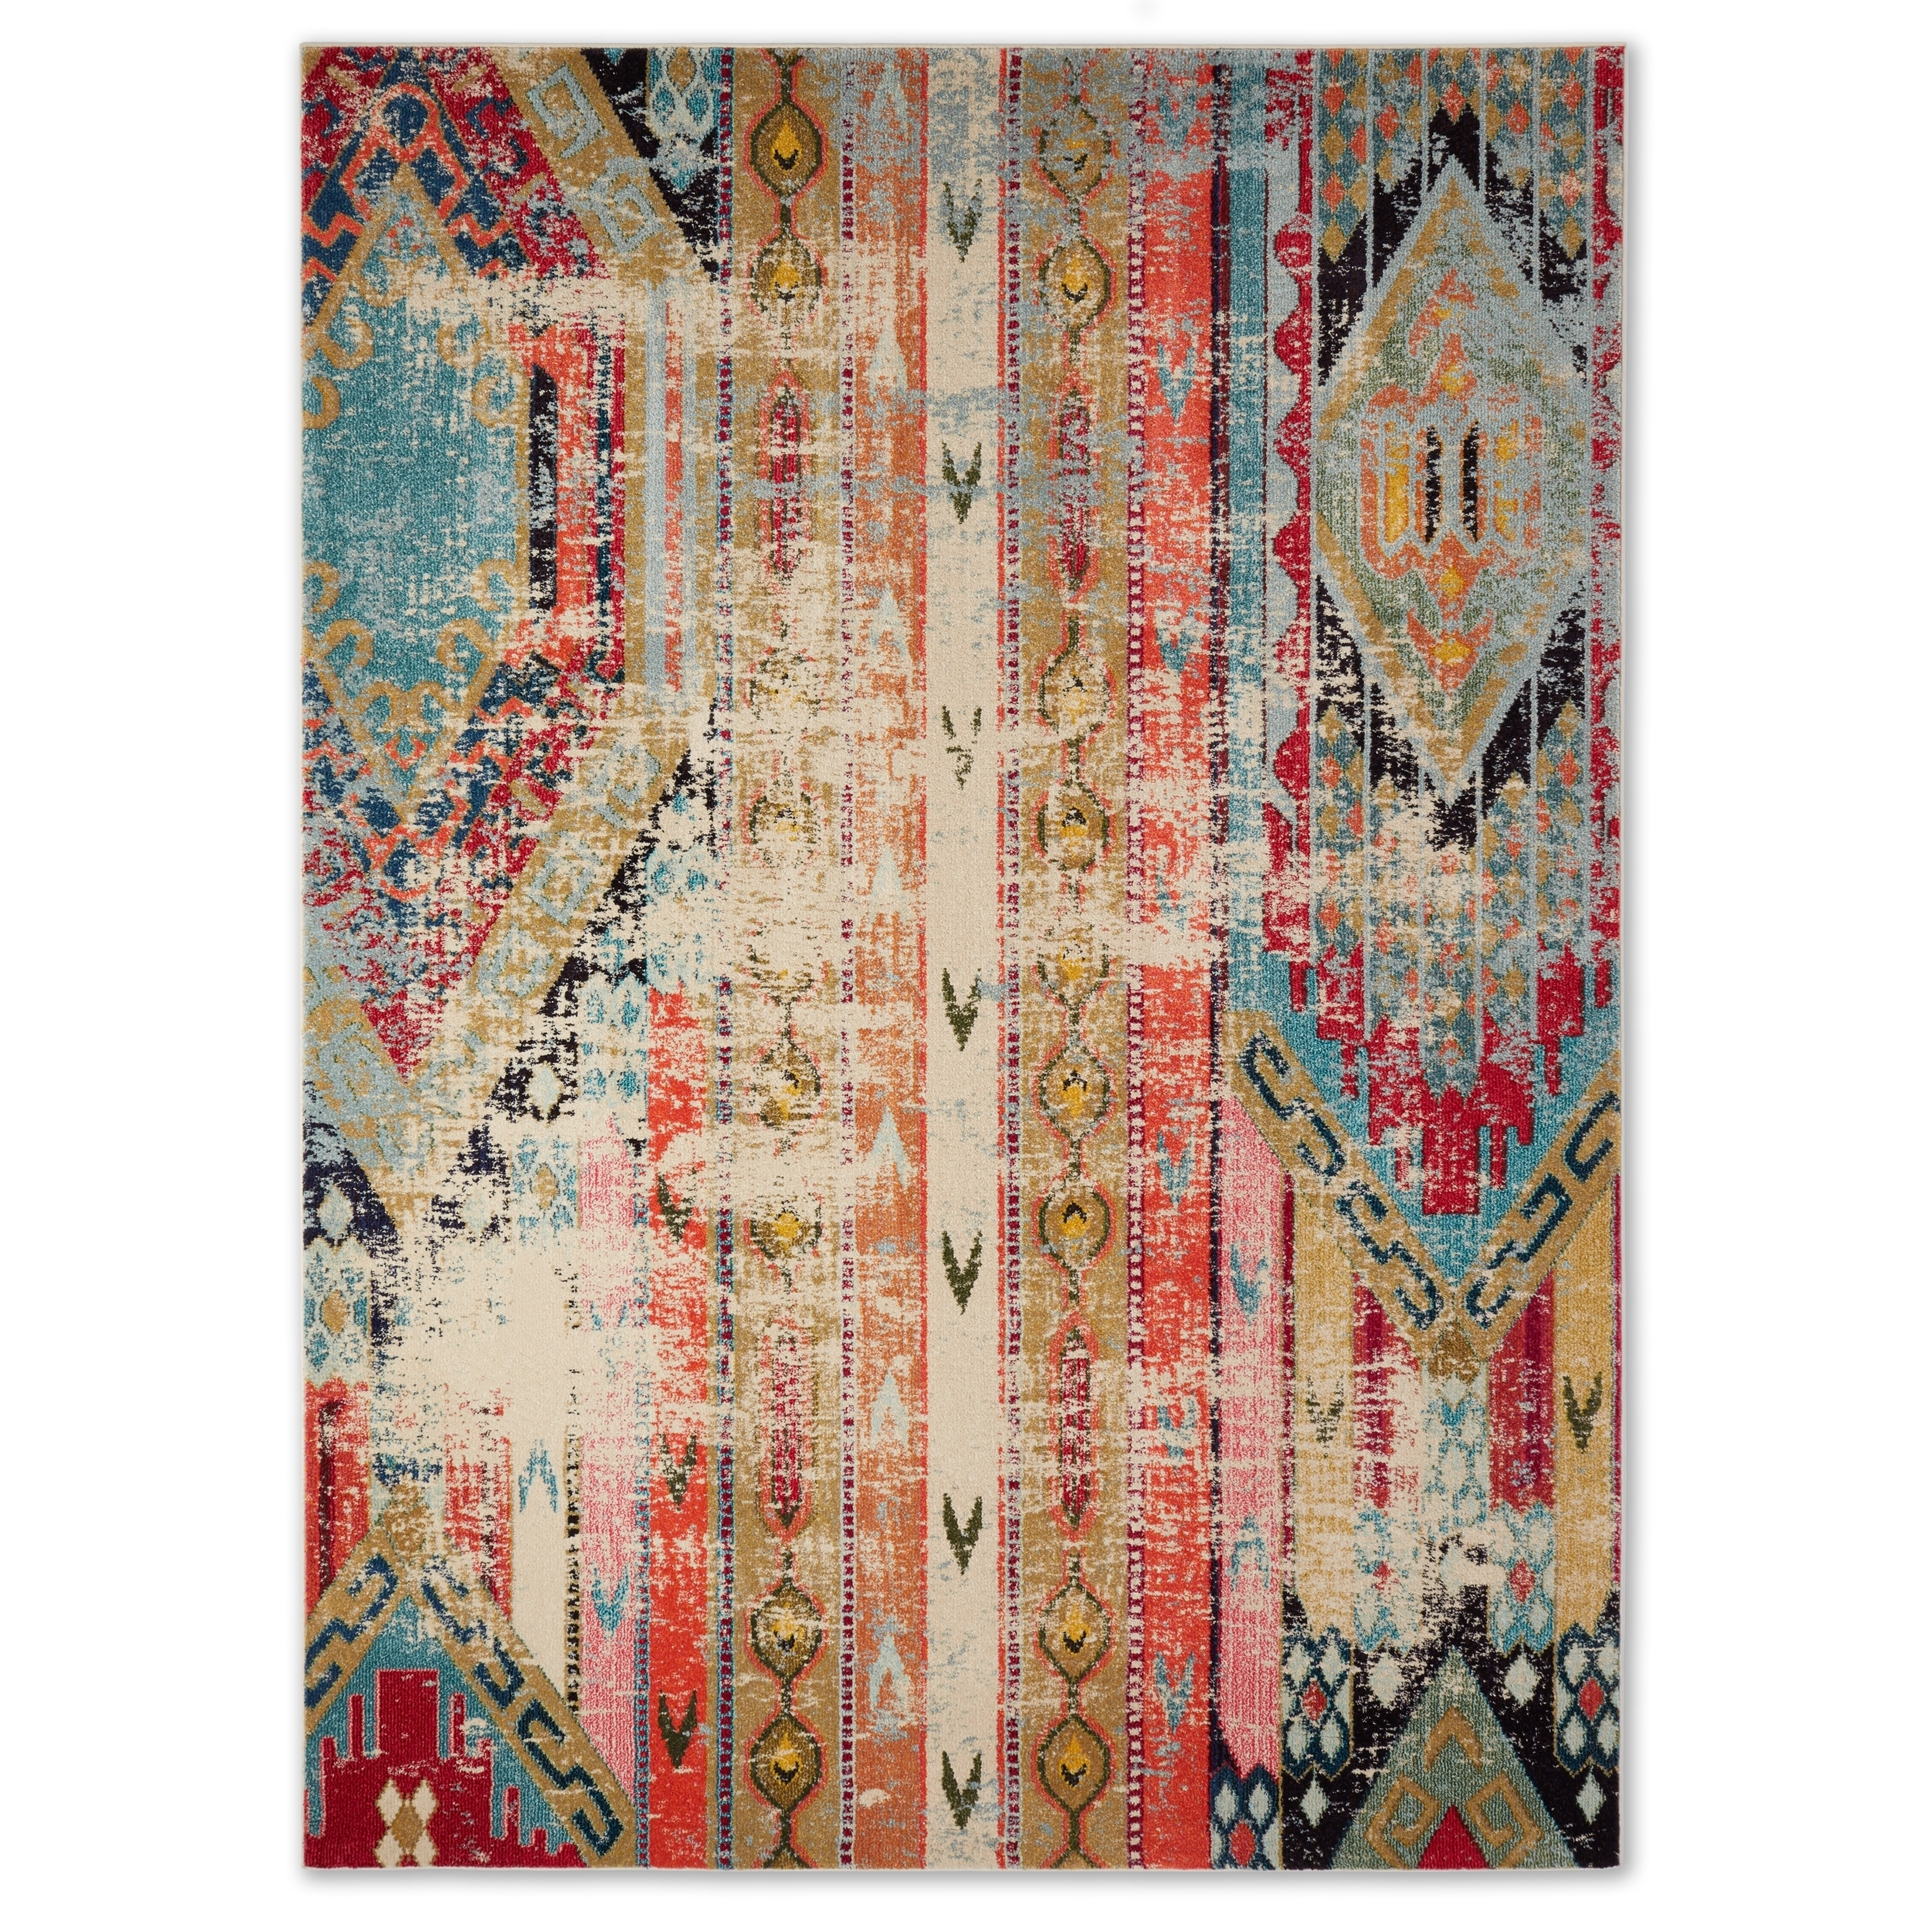 Safavieh Monaco Vintage Bohemian Multi-colored Distressed Rug (8' x 11') -  Free Shipping Today - Overstock.com - 17556335